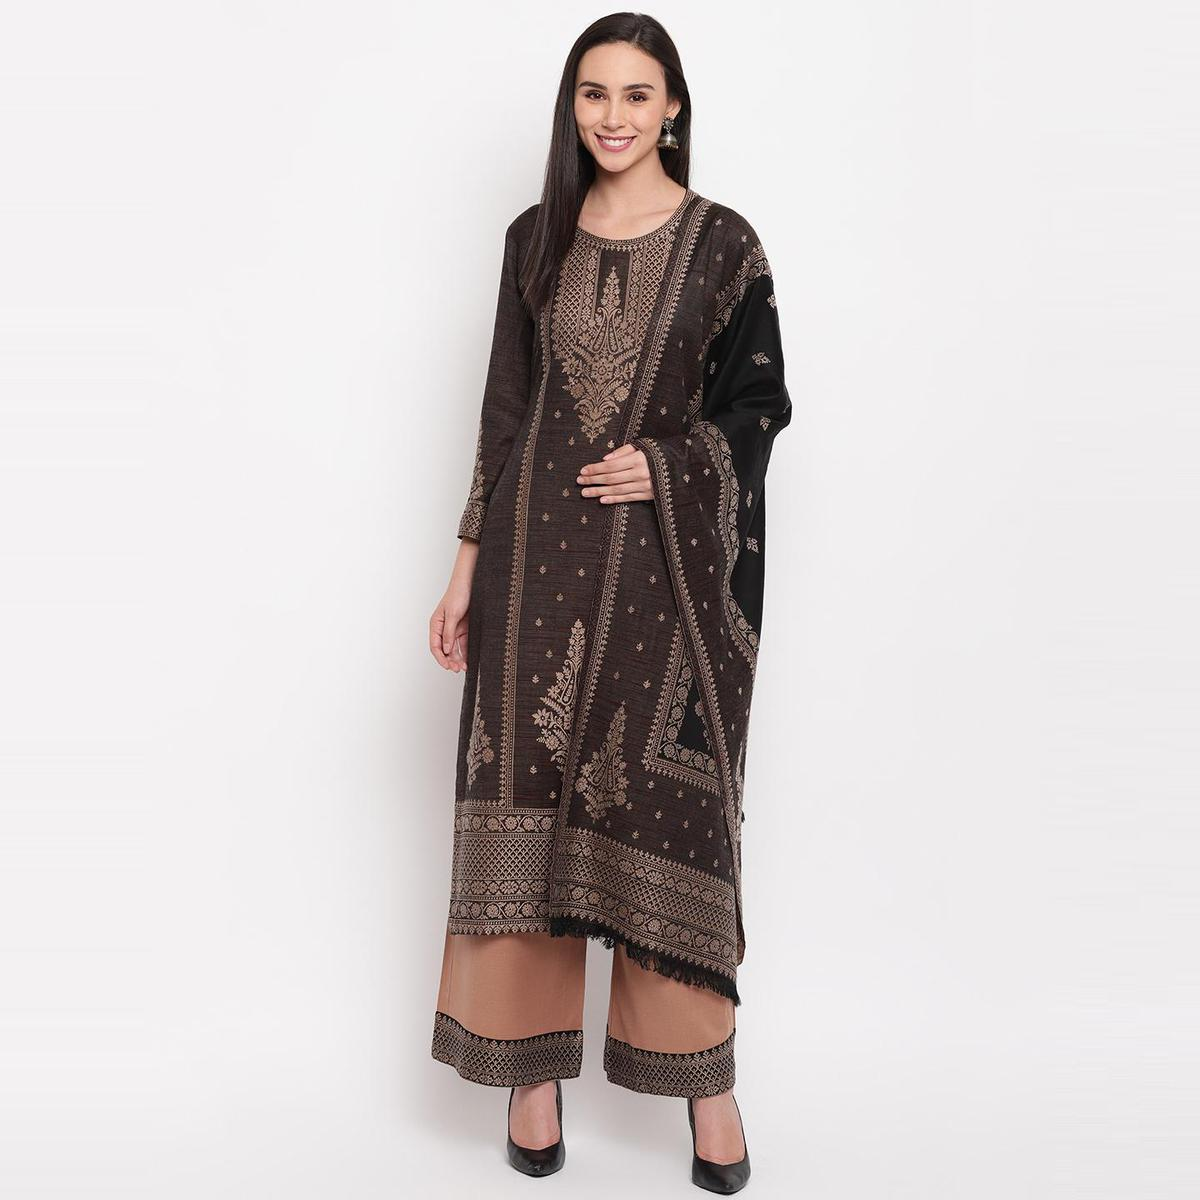 HK Colors Of Fashion - Coffee Brown Colored Khadi Look Woven Design Acrylic Wool Blend Dress Material